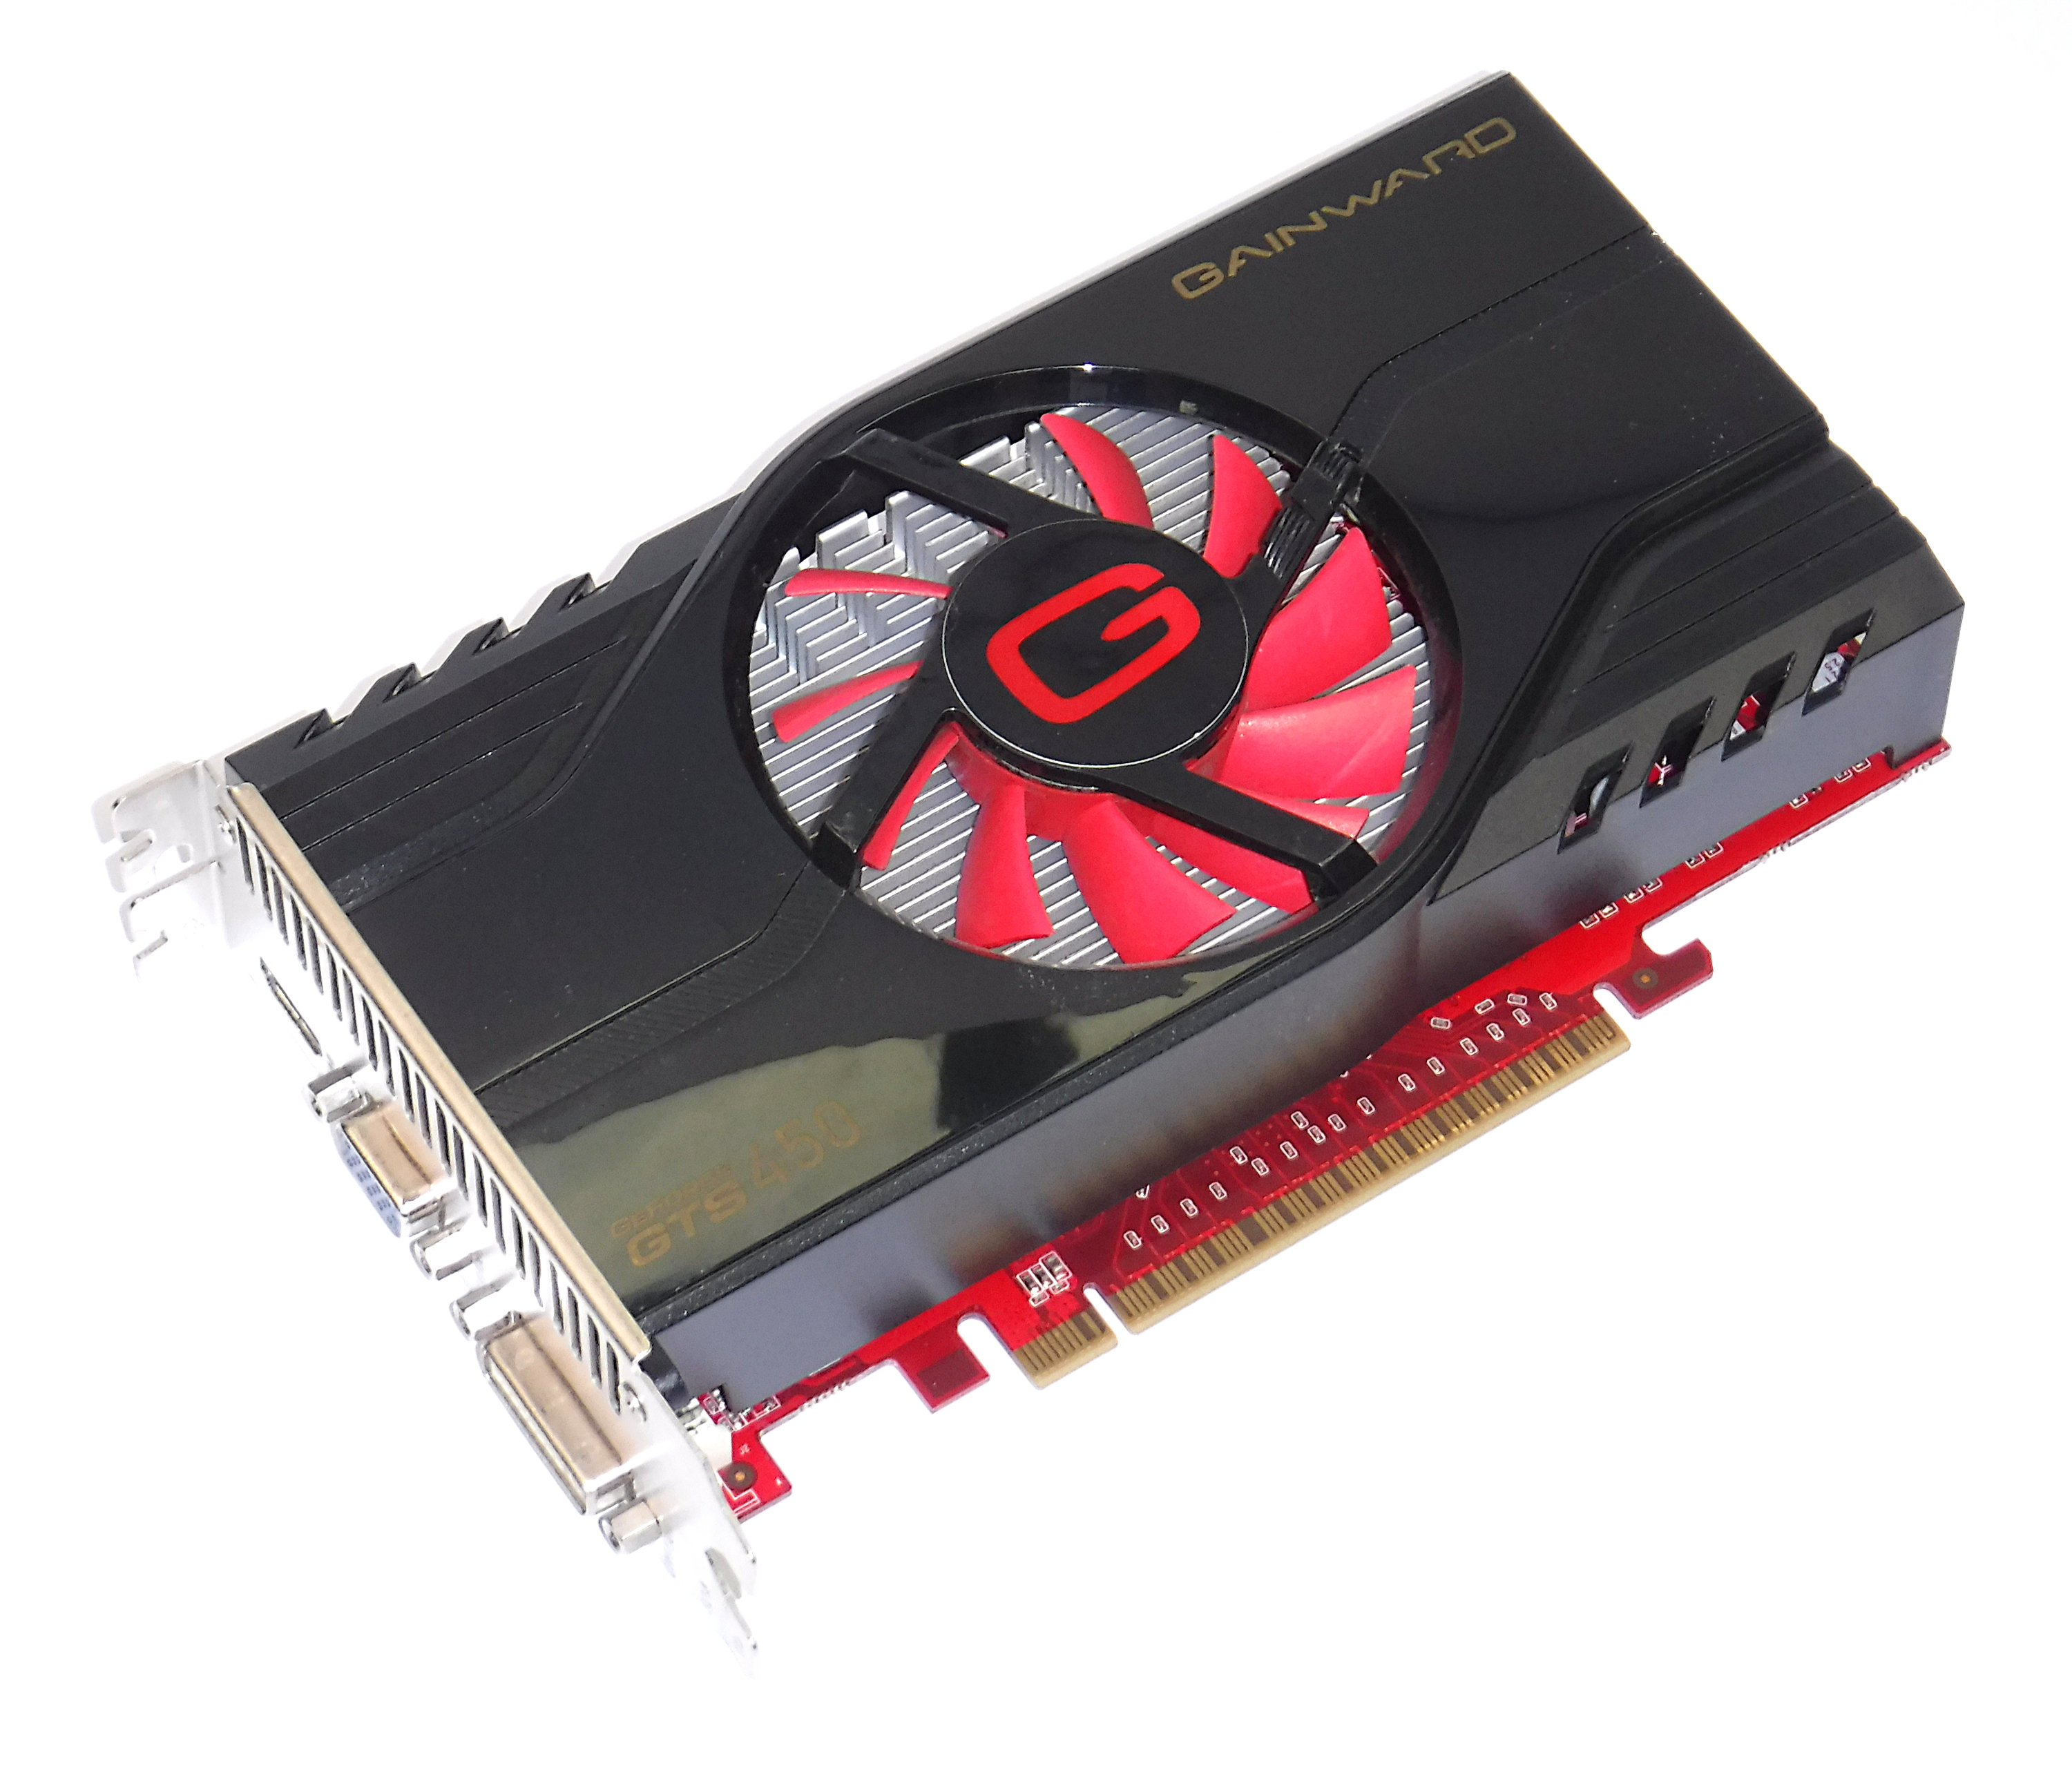 Gainward NE5S450ZFHD01-N1063 GeForce GTS 450 1GB GDDR5 128bit PCIe Graphics Card